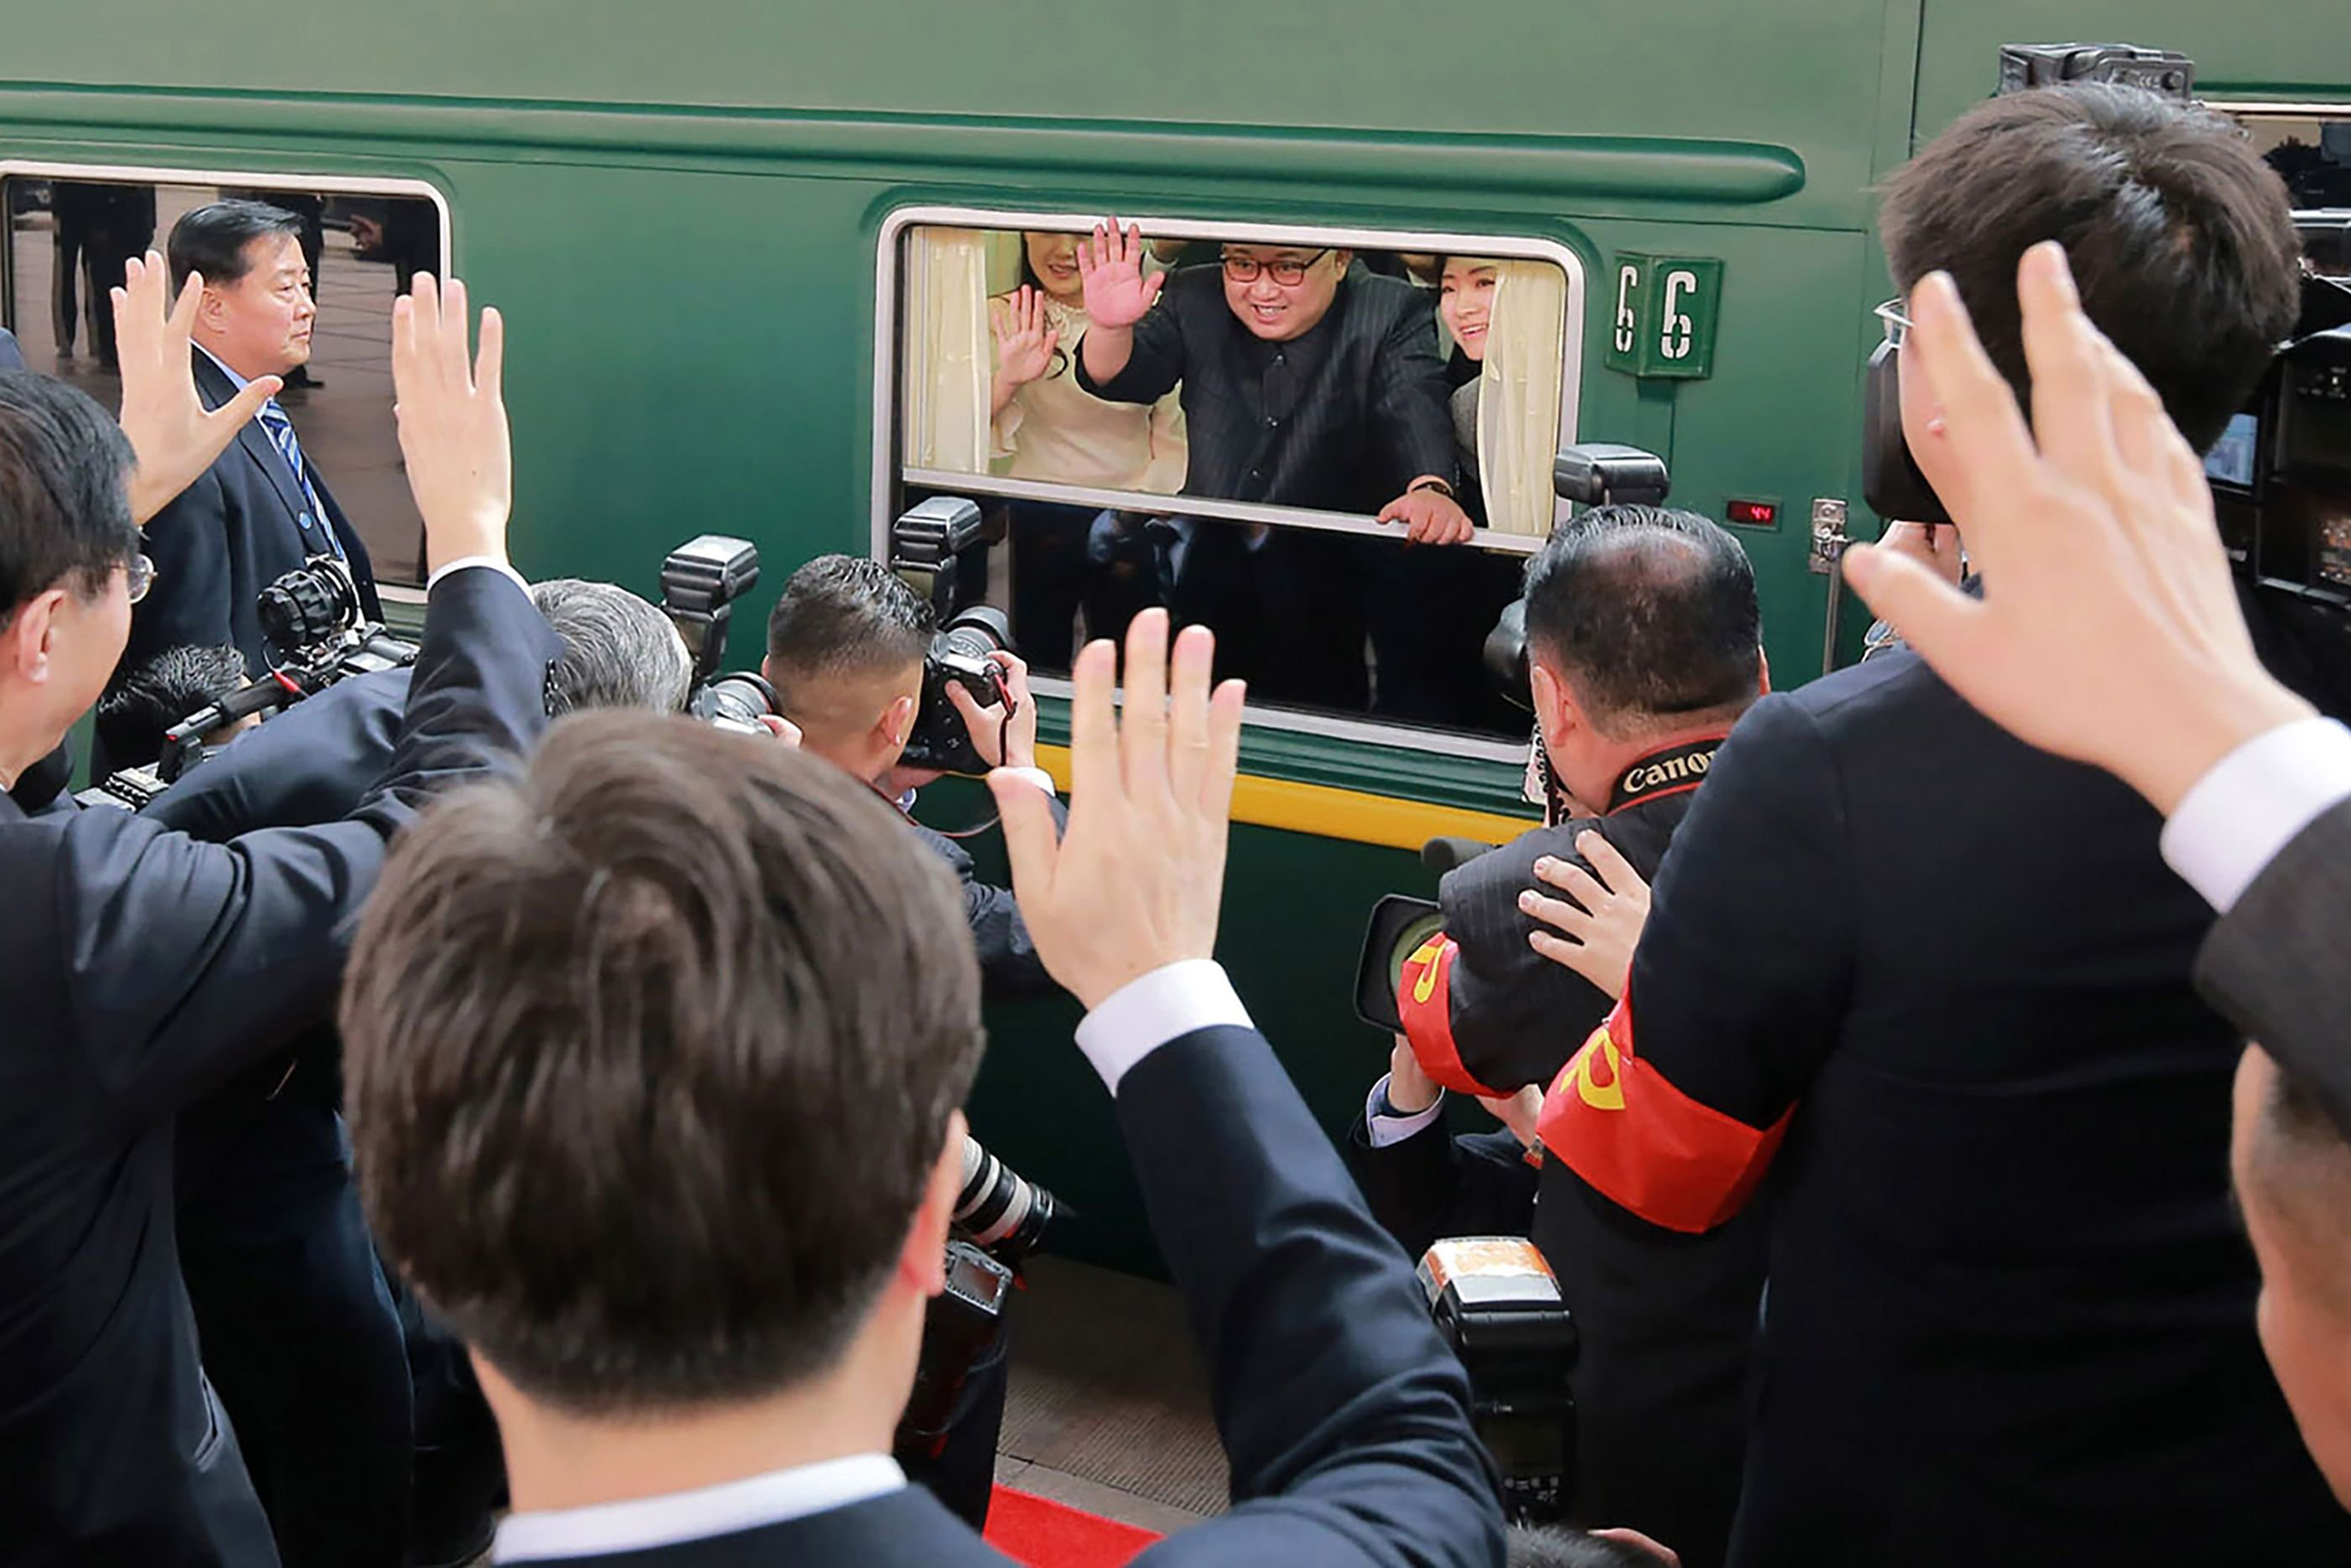 North Korean leader Kim Jong Un waves from his train as it prepares to depart from Beijing railway station